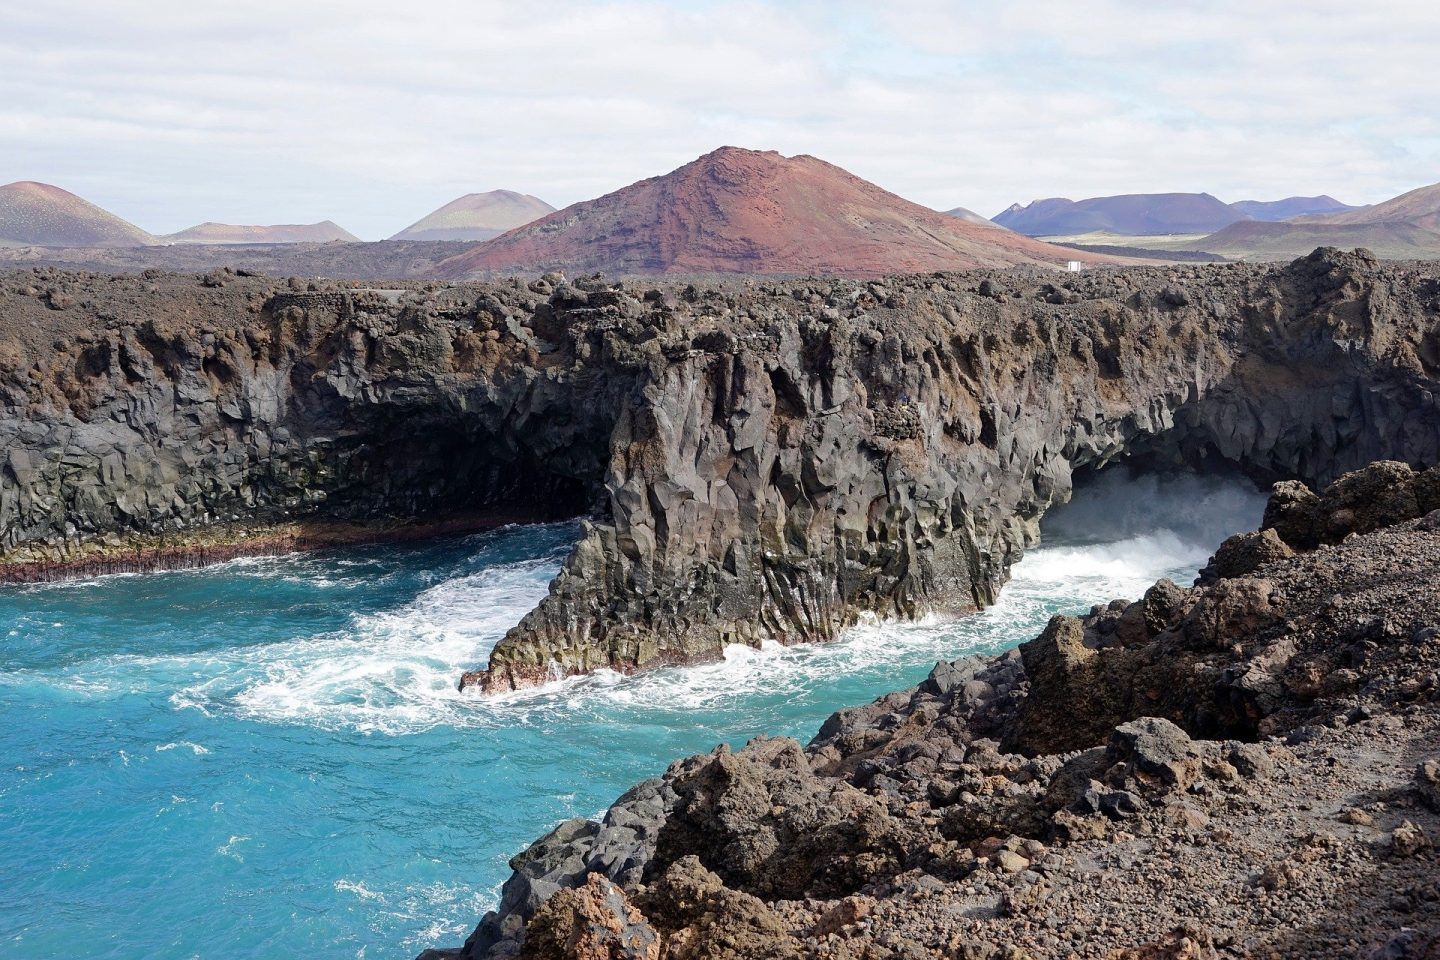 Things to do in Lanzarote: los hervideros showing the sea crash up against black rock cliffs